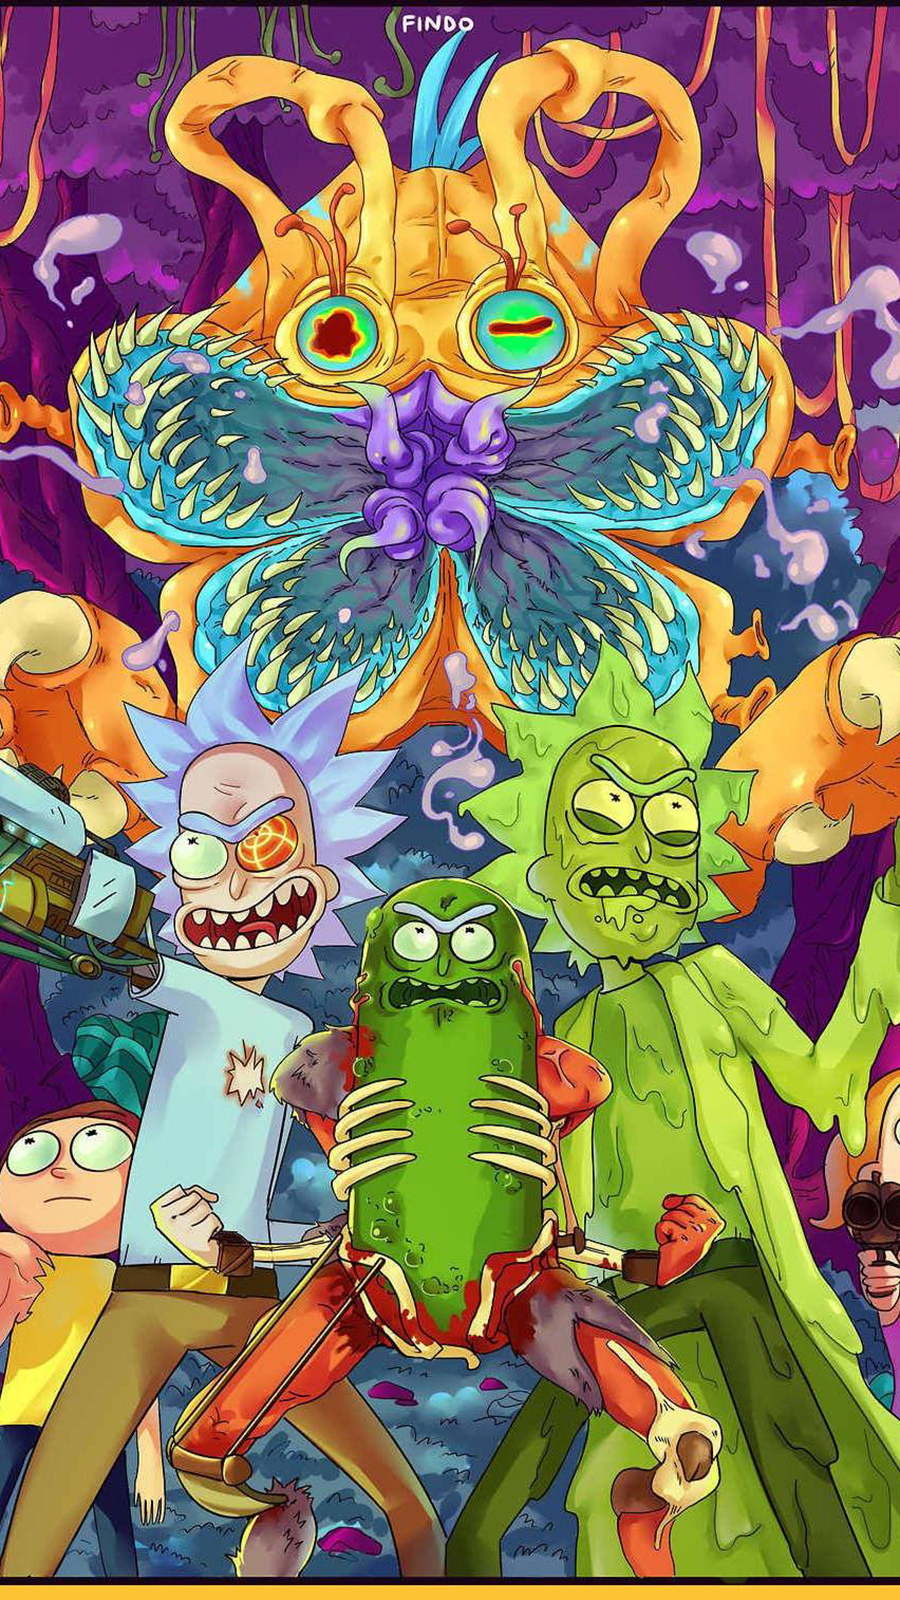 Rick & Morty, Monster Wallpapers Free Download For Your Device